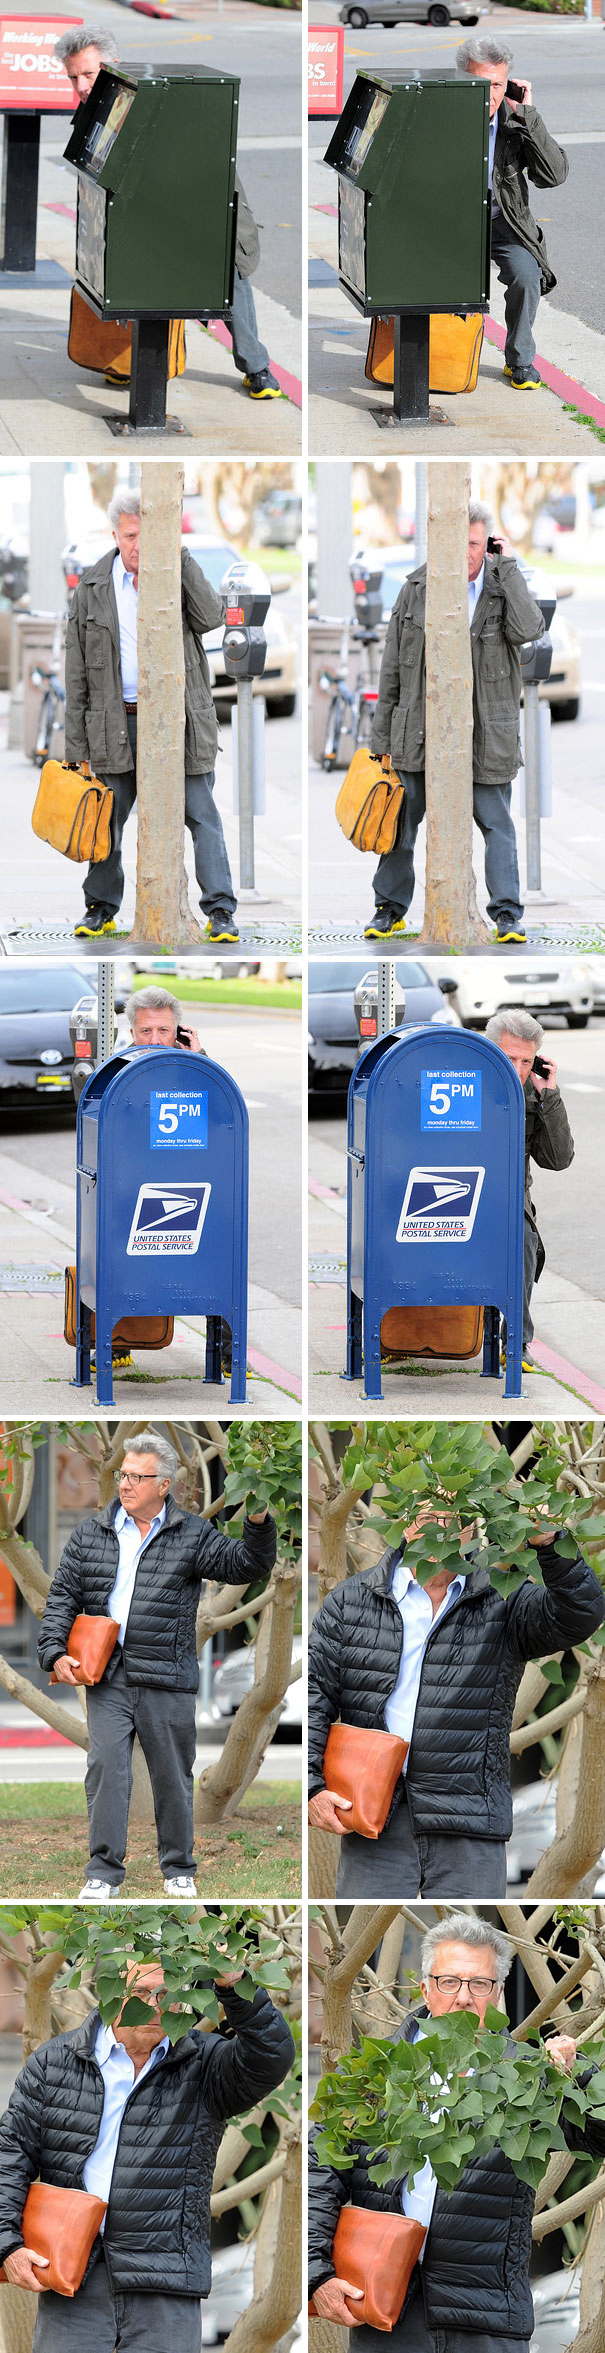 funny-celebrity-reactions-to-paparazzi-52-5863b502457f7__605